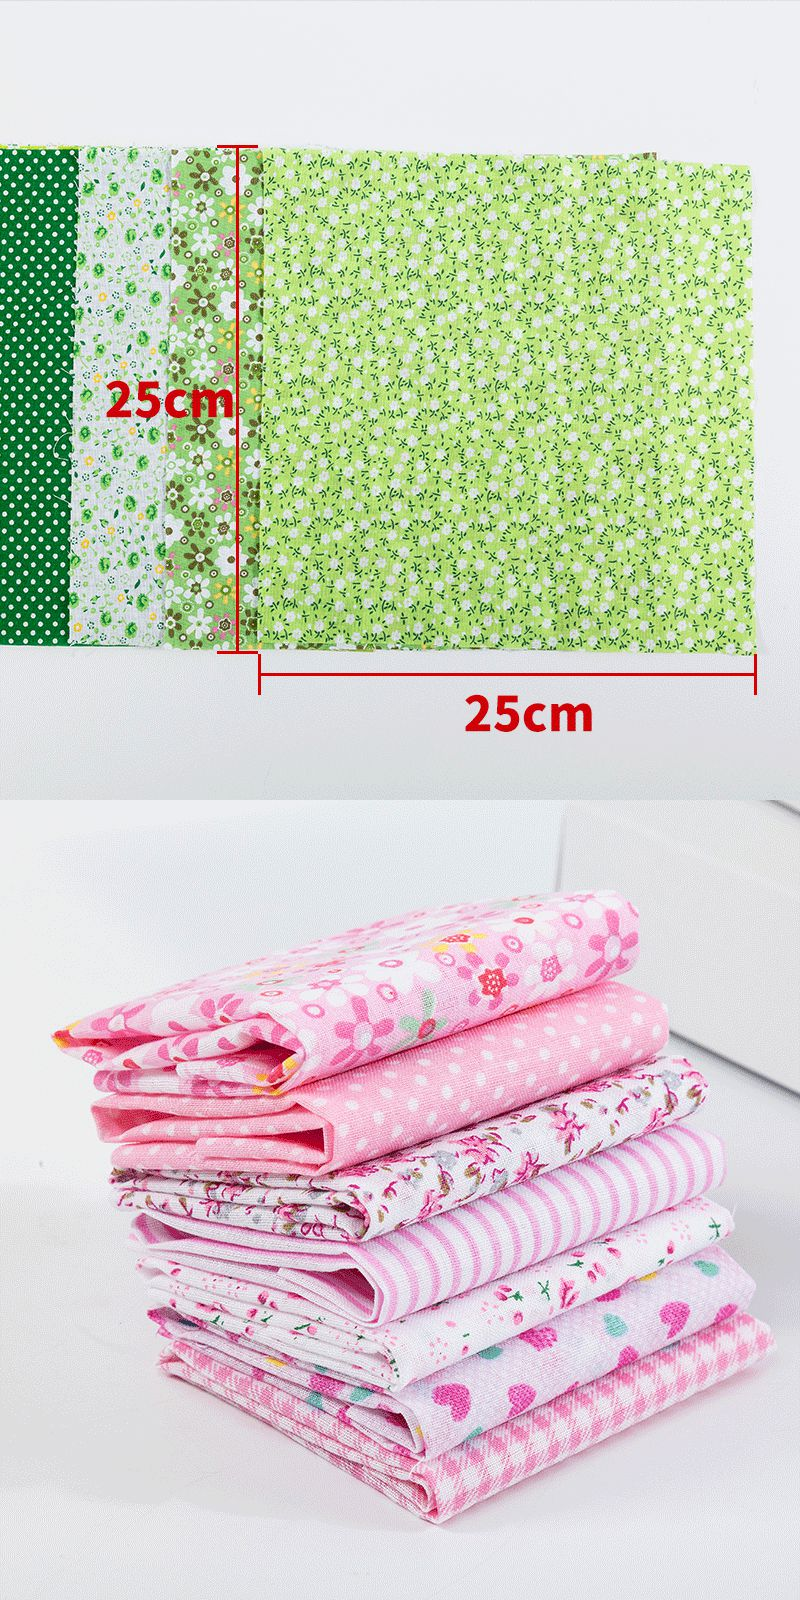 Cotton Fabric Printed Cloth Sewing Quilting Fabrics for Patchwork Needlework